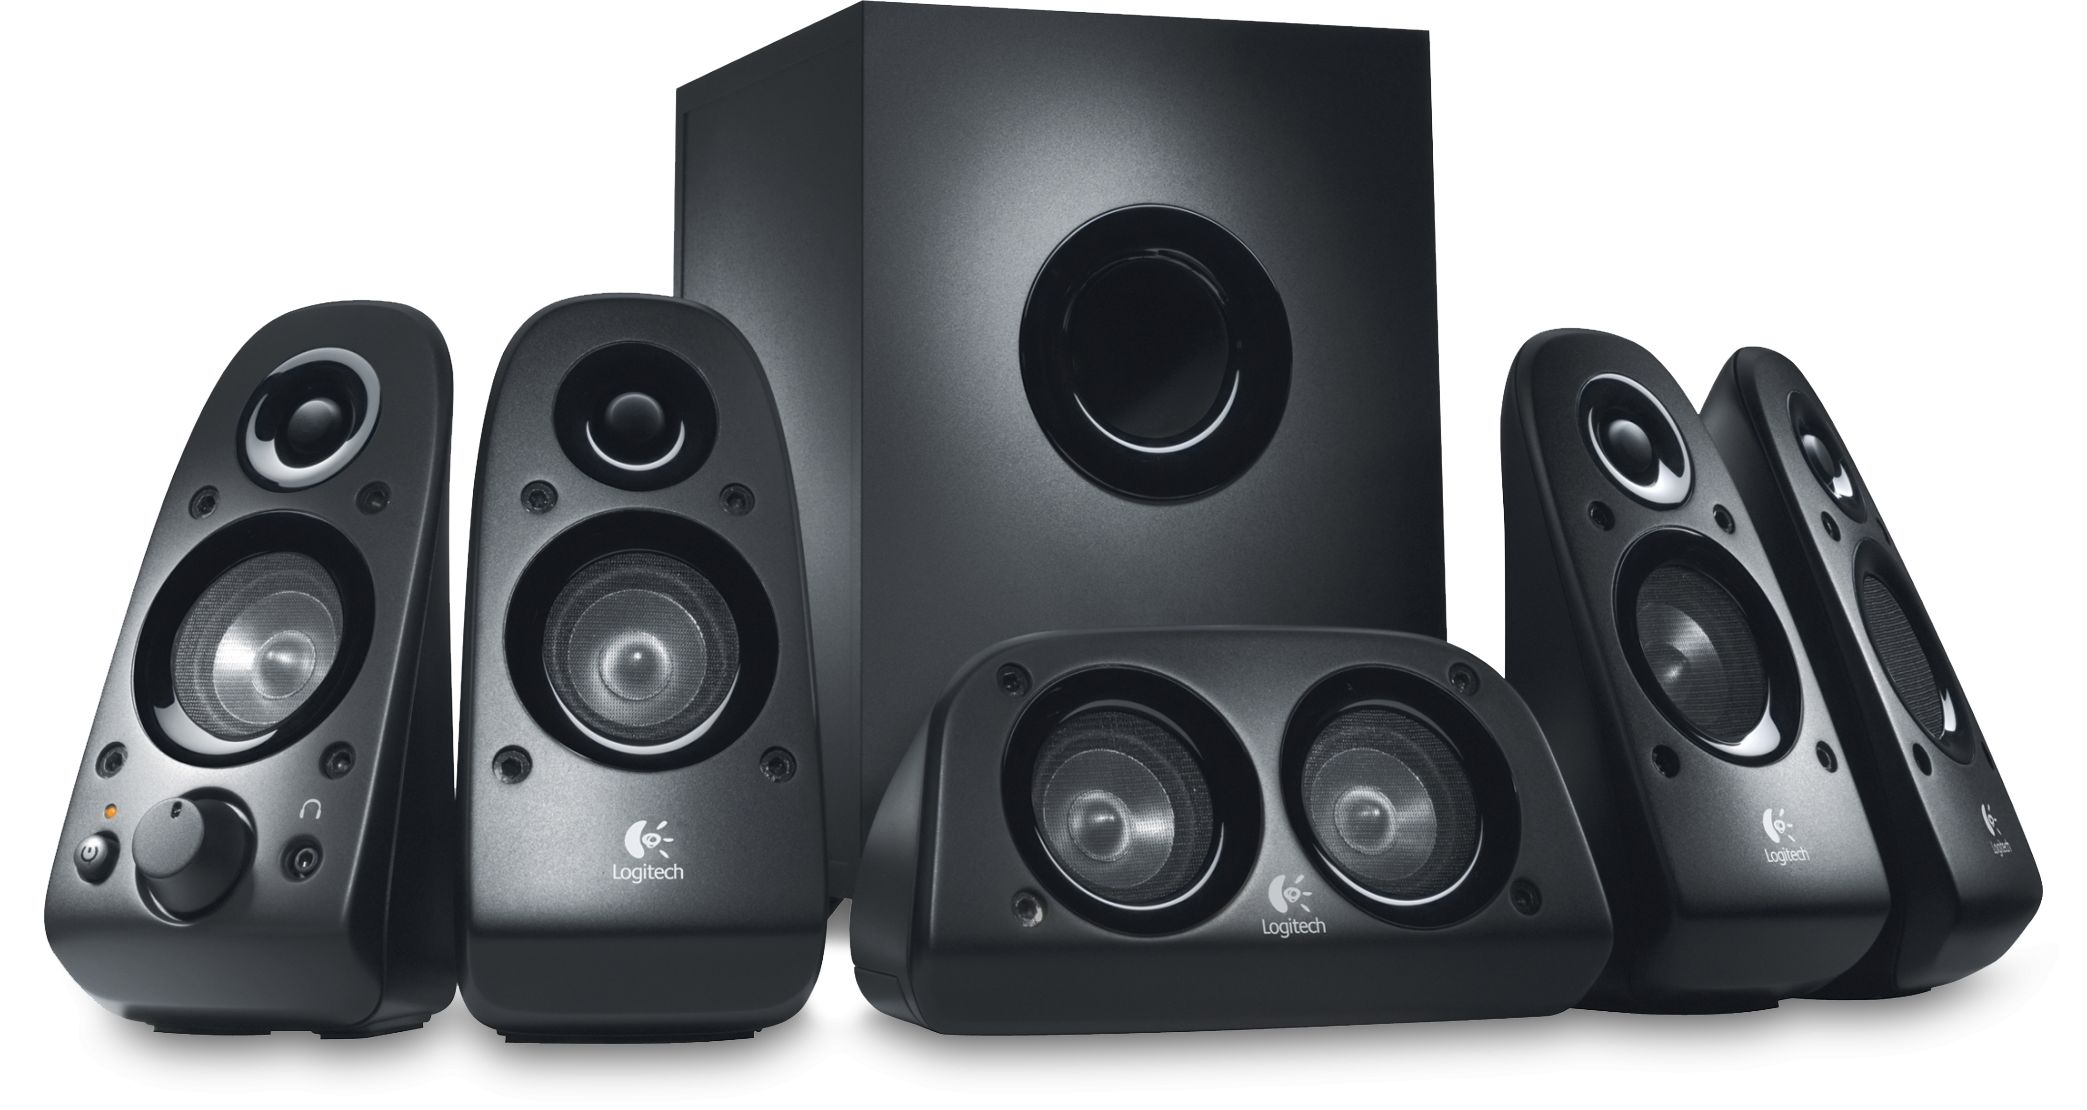 Smart Home Systems Z506 5 1 Surround Sound Speakers